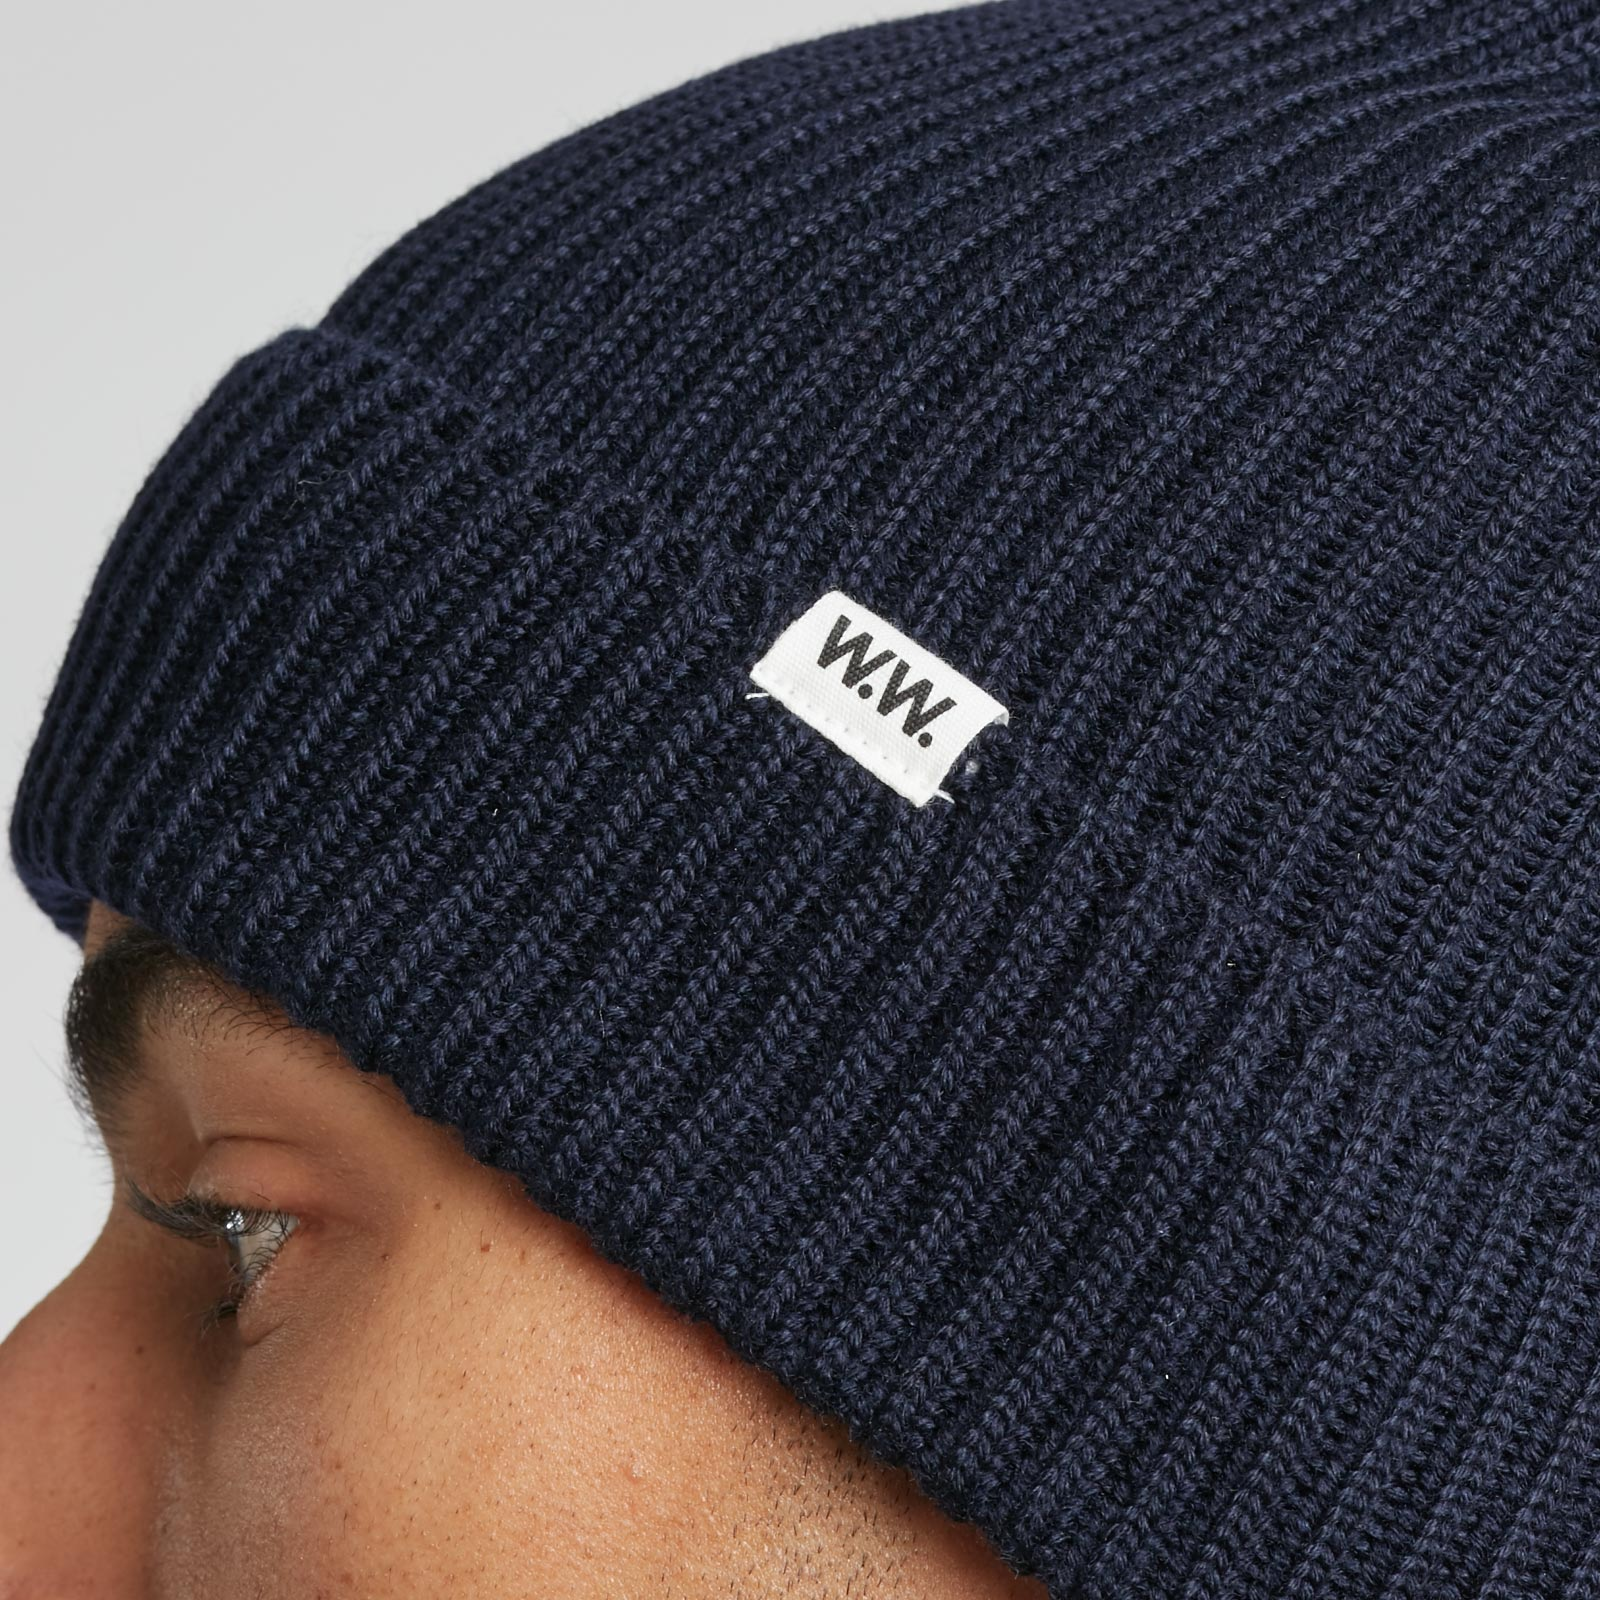 91073dad7 Wood Wood Henry Ribbed Beanie - 11730809-4068 - Sneakersnstuff ...